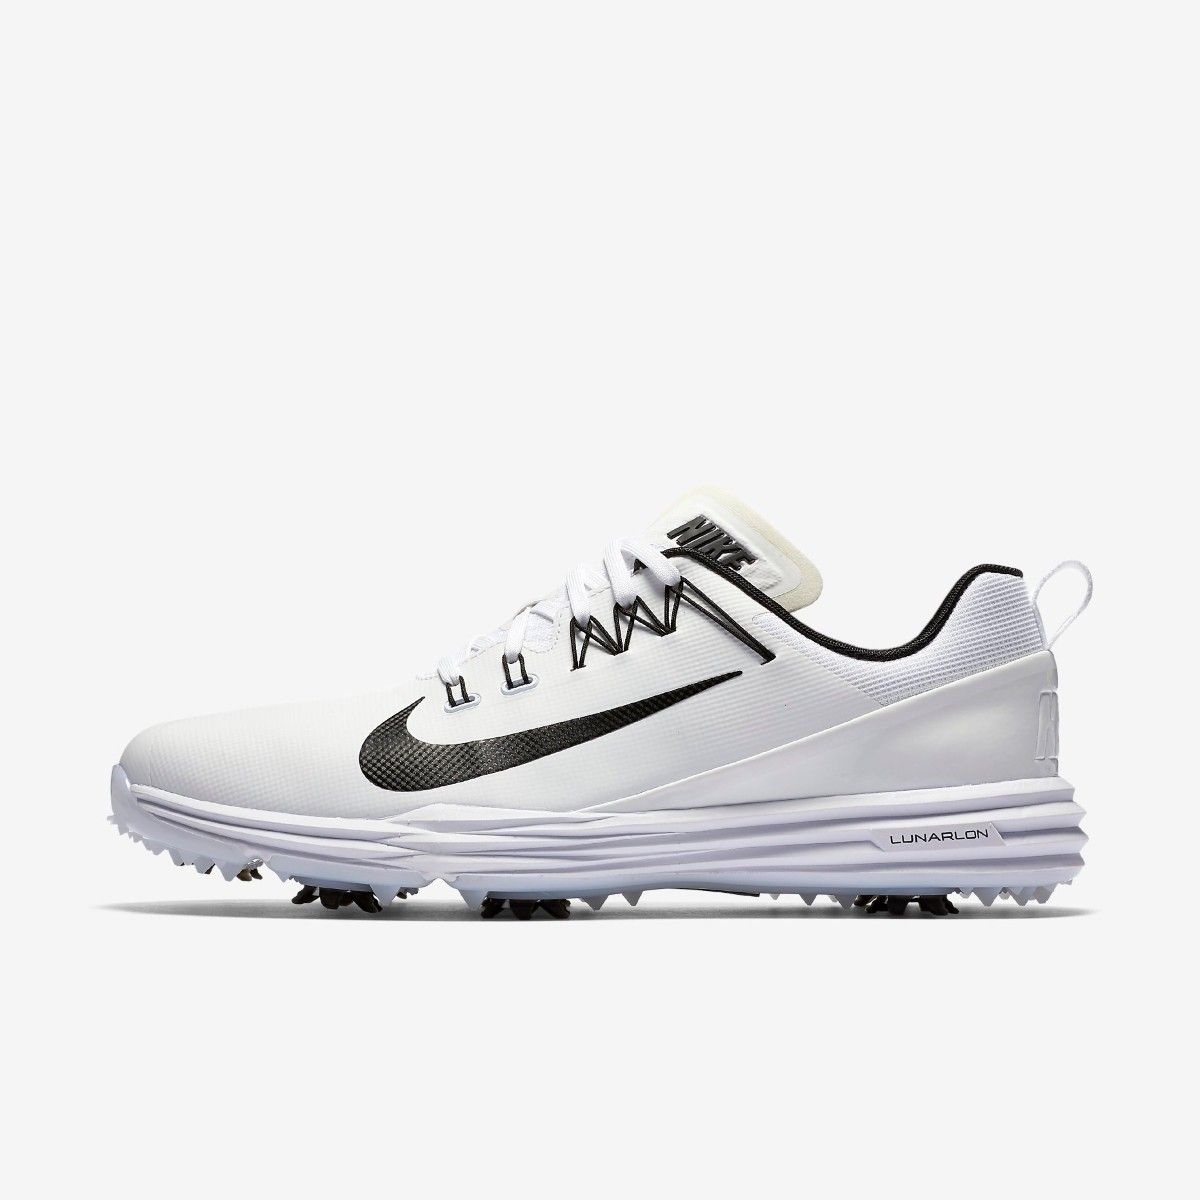 15c79de3b612e7 Nike Lunar Command 2 Golf Shoe - White Black